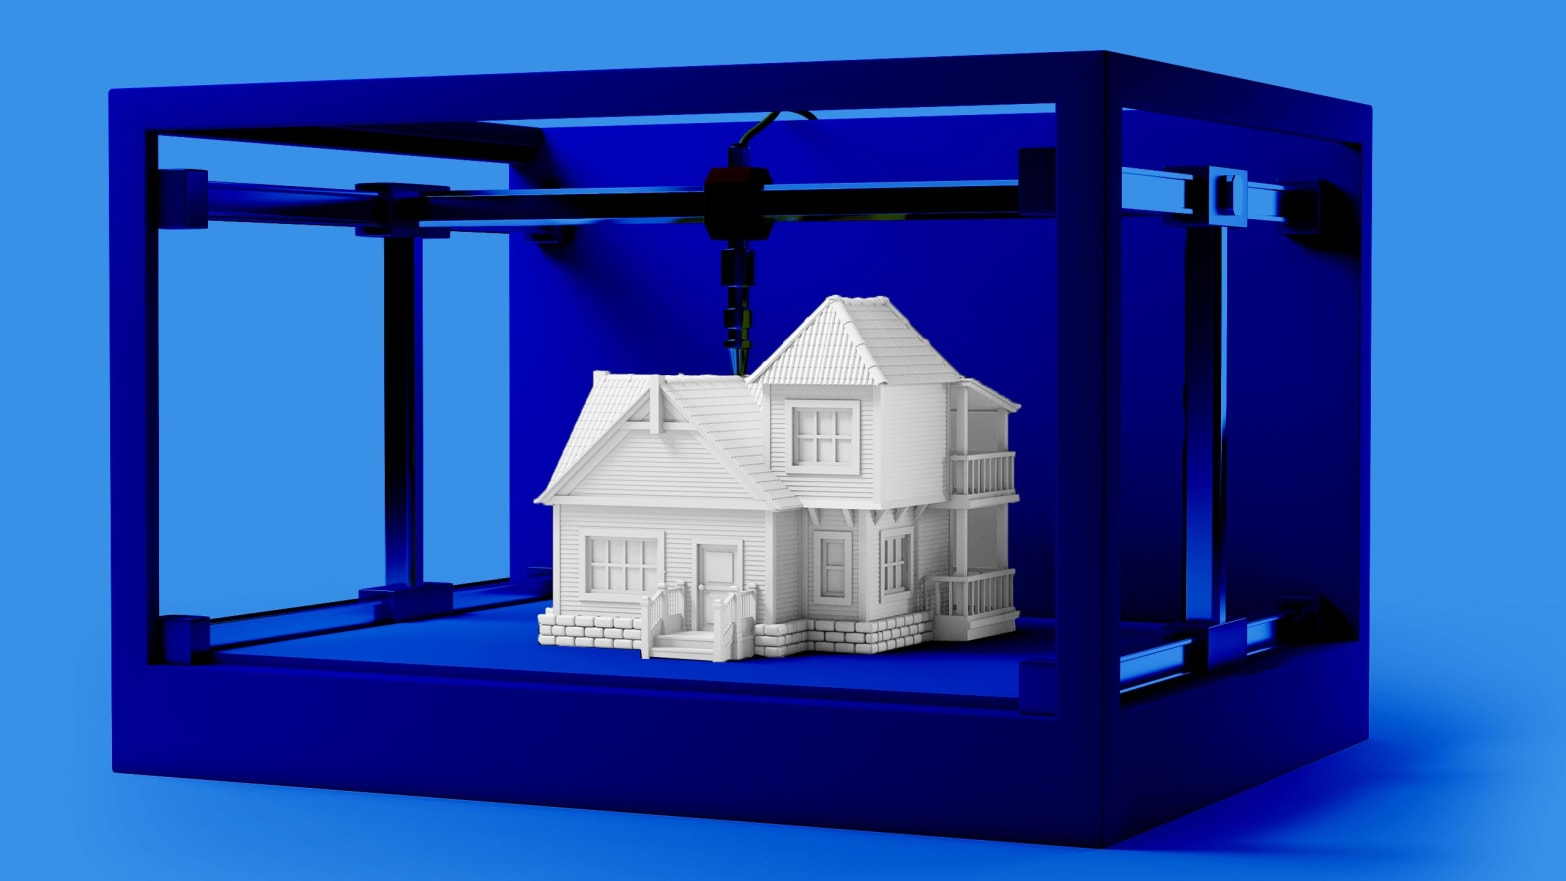 simulated white house in blue cage printer 3d printed house new story icon poor el salvador honduras poverty